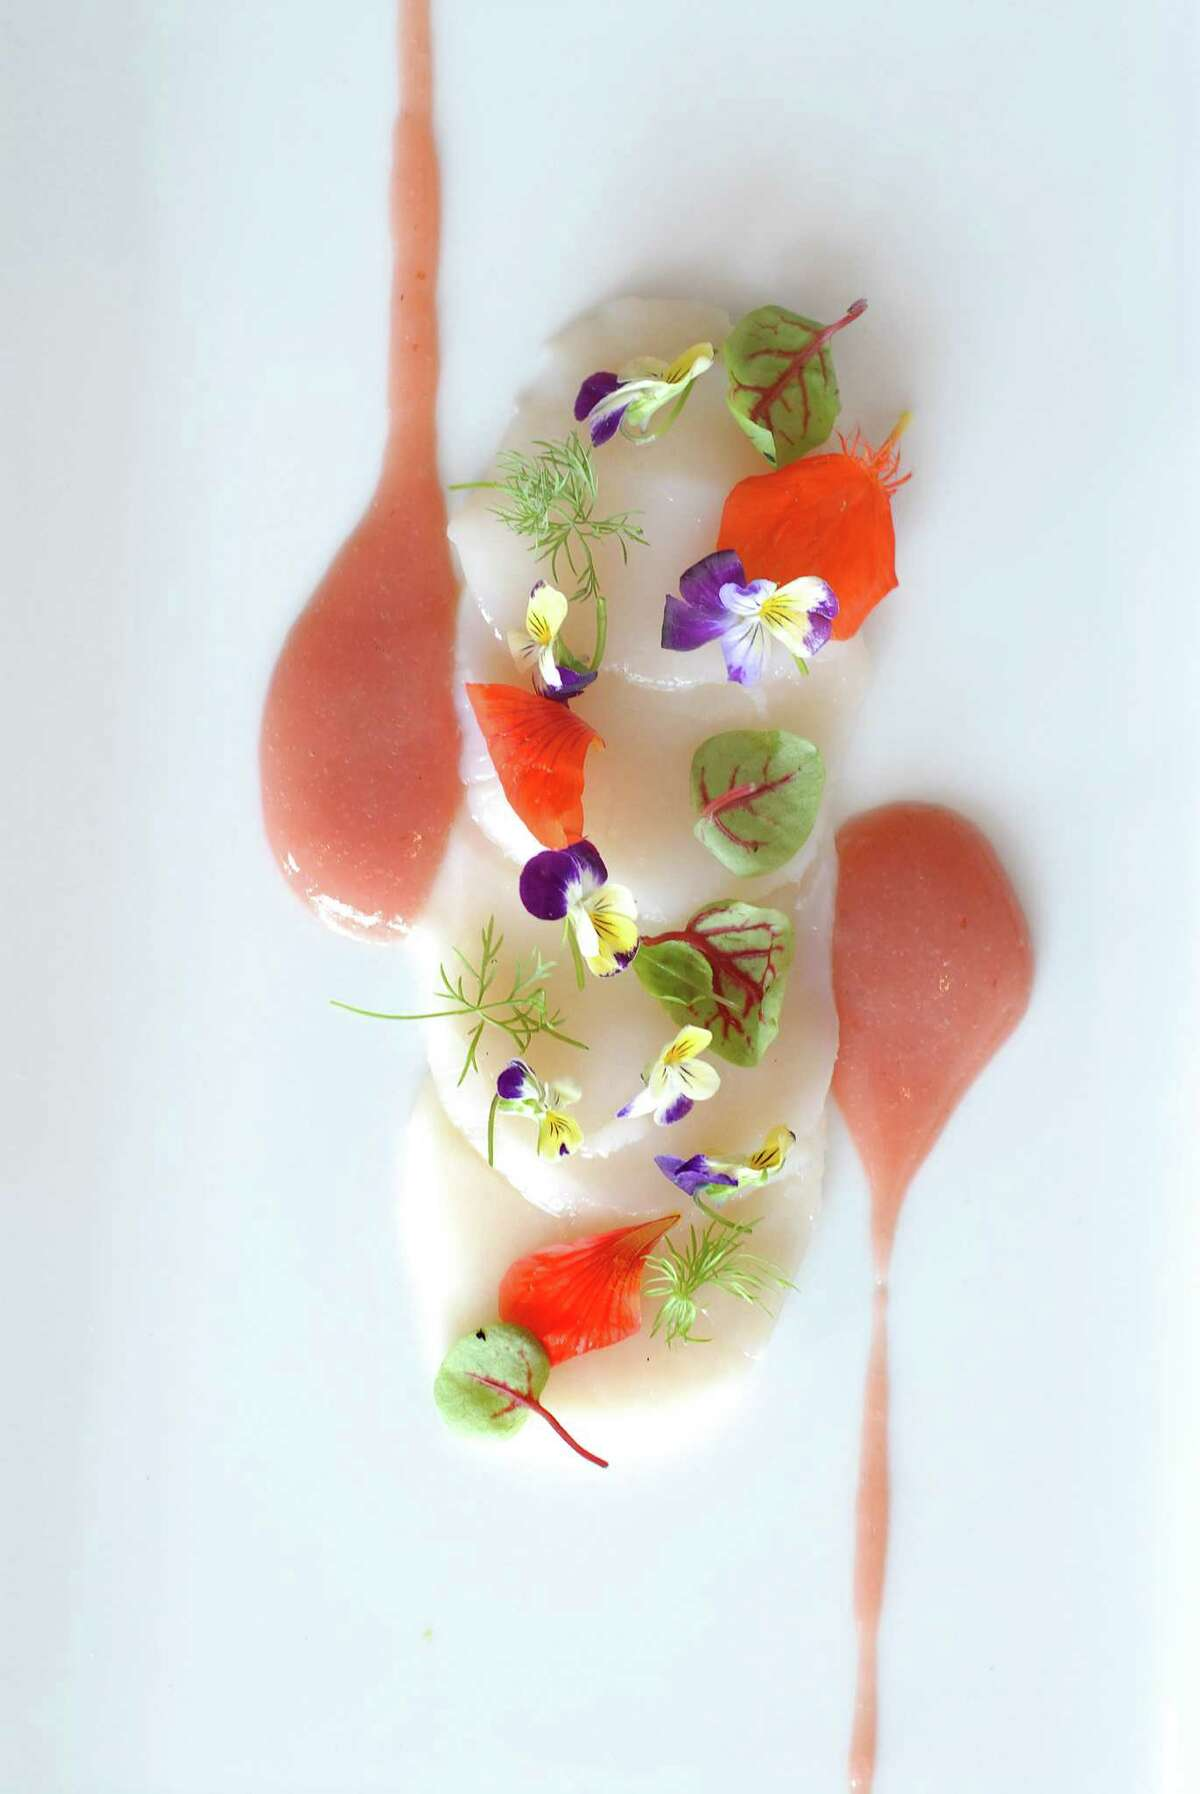 Crudo of Maine sea scallops with yuzo vinaigrette, radish flowers, rhubarb at Elm restaurant in New Canaan, Conn. Solé and Elm Part of Z Hospitality Group, which owns Mediterraneo and East End in Greenwich and Terra of Greenwich and Danbury, Solé, is one of Tropeano's picks for dining in town. She also recommends Elm downtown.